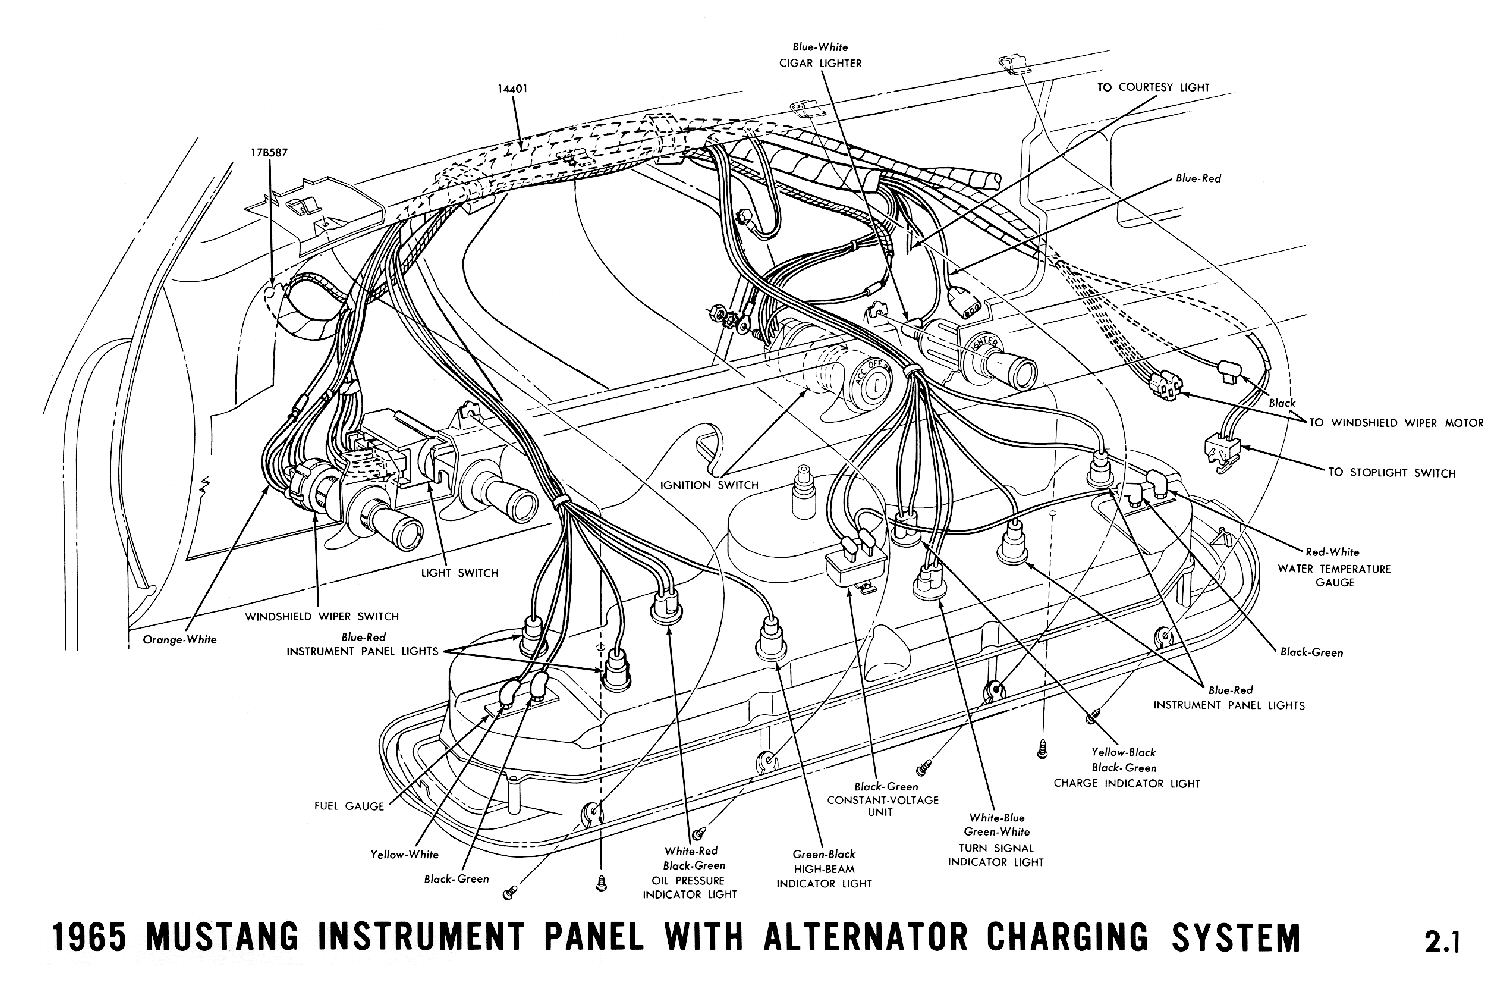 1965a 1965 mustang wiring diagrams average joe restoration 1969 mustang alternator wiring diagram at n-0.co